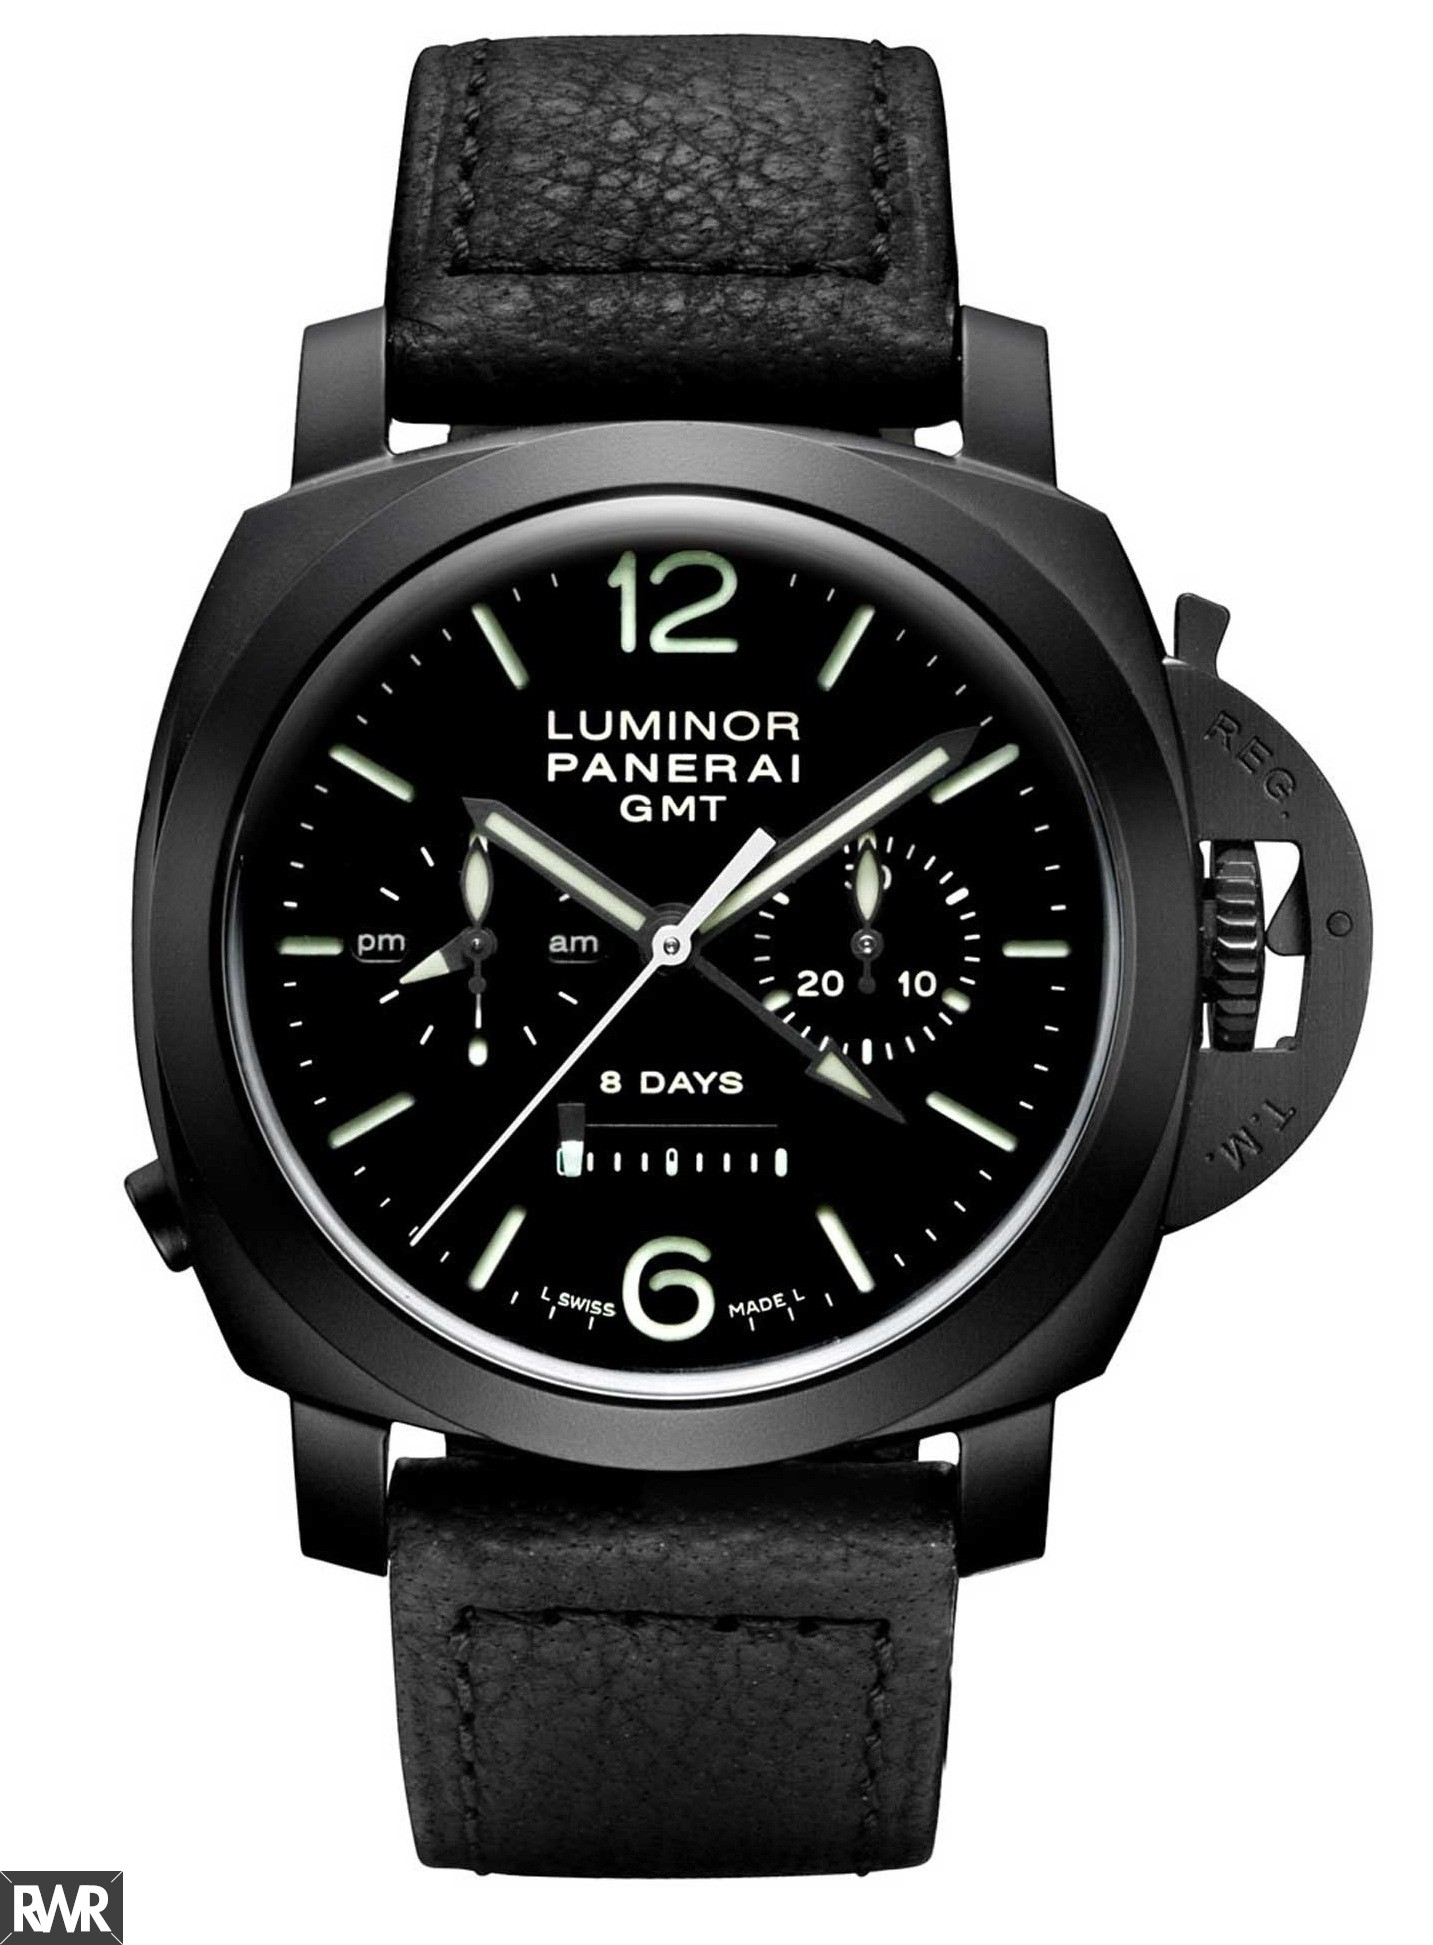 Fake Panerai Luminor 1950 Chrono Monopulsante 8 Days GMT Watch PAM 00317